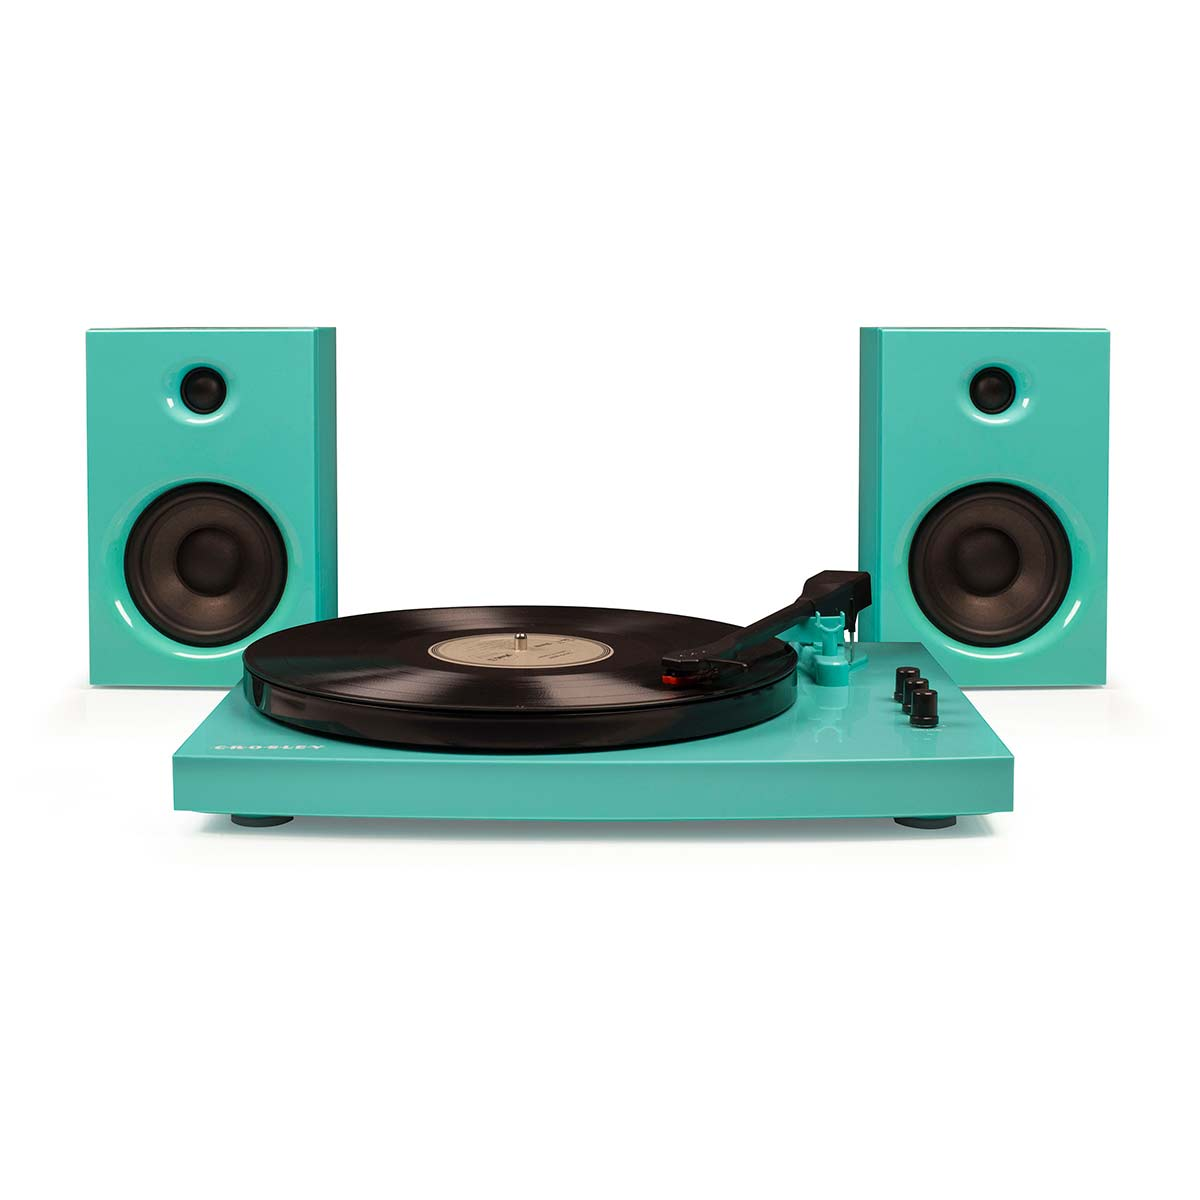 Crosley T100 Record Player and Speaker System - Turquoise